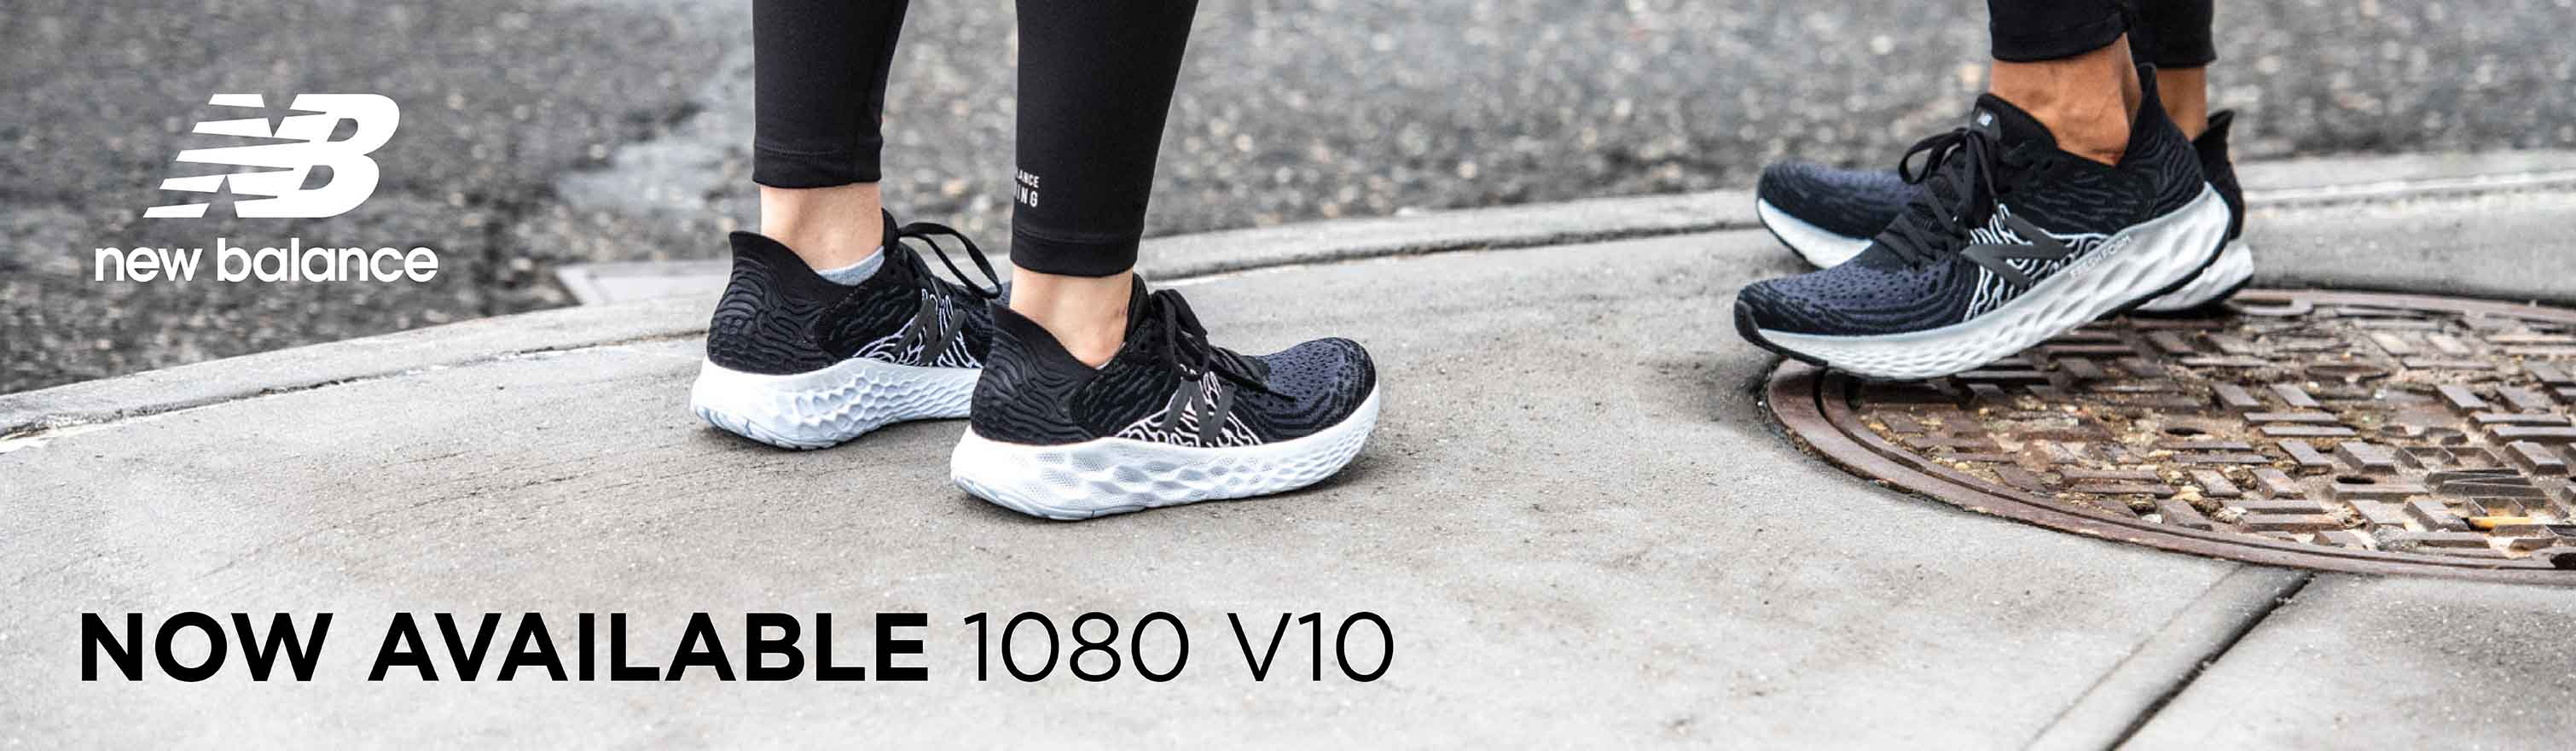 New Balance 1080v10 is Now Available